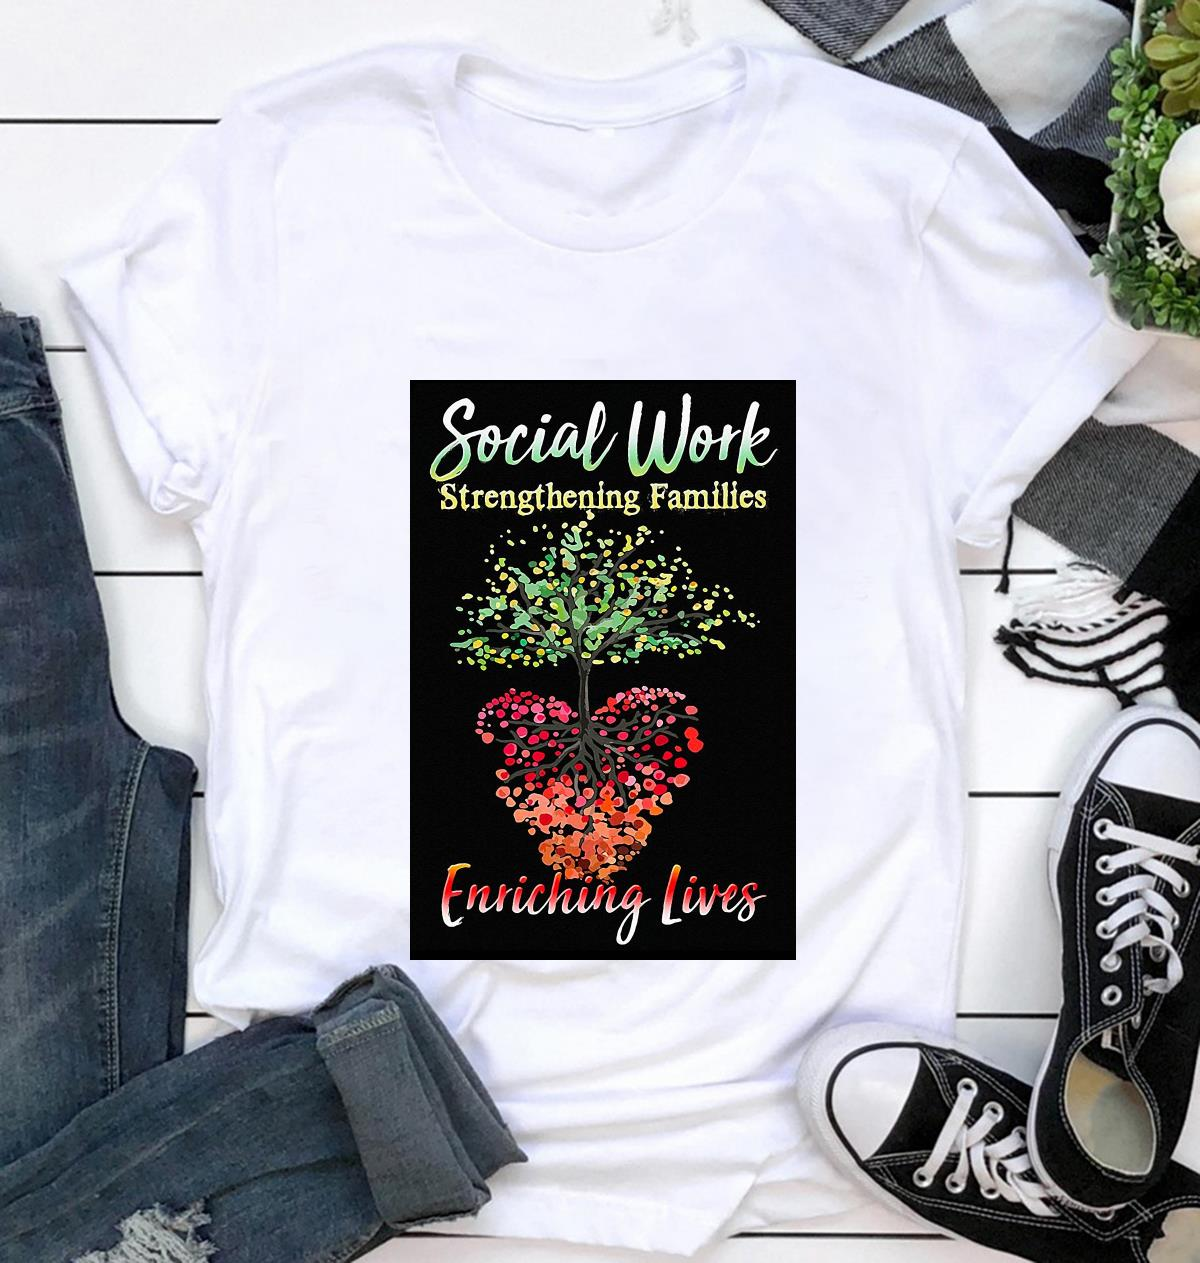 Social work strengthening families enriching lives poster canvas t-shirt